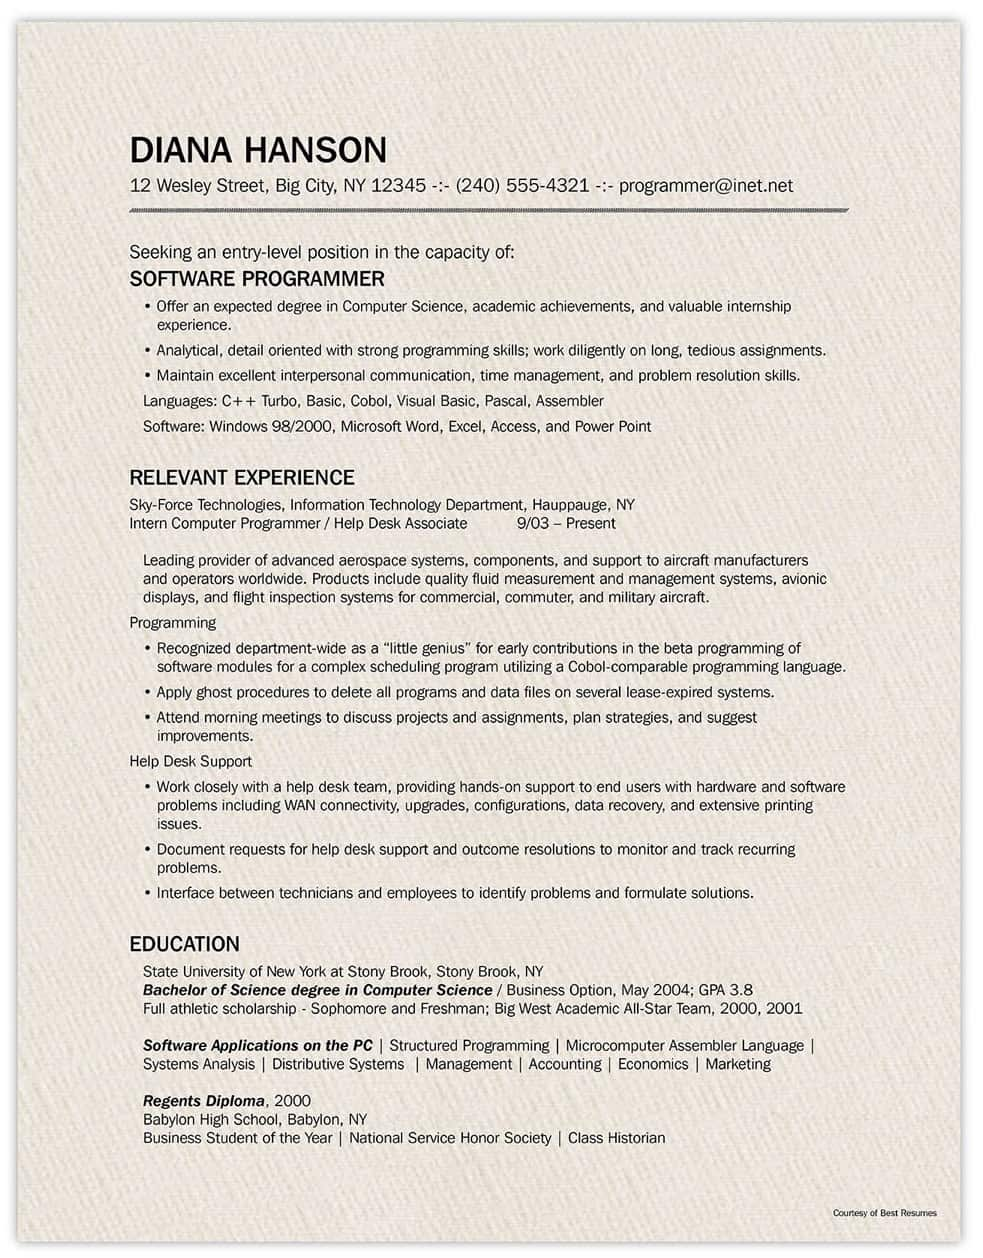 Charming Southworth Linen Resume Paper Sample In Best Paper For Resume